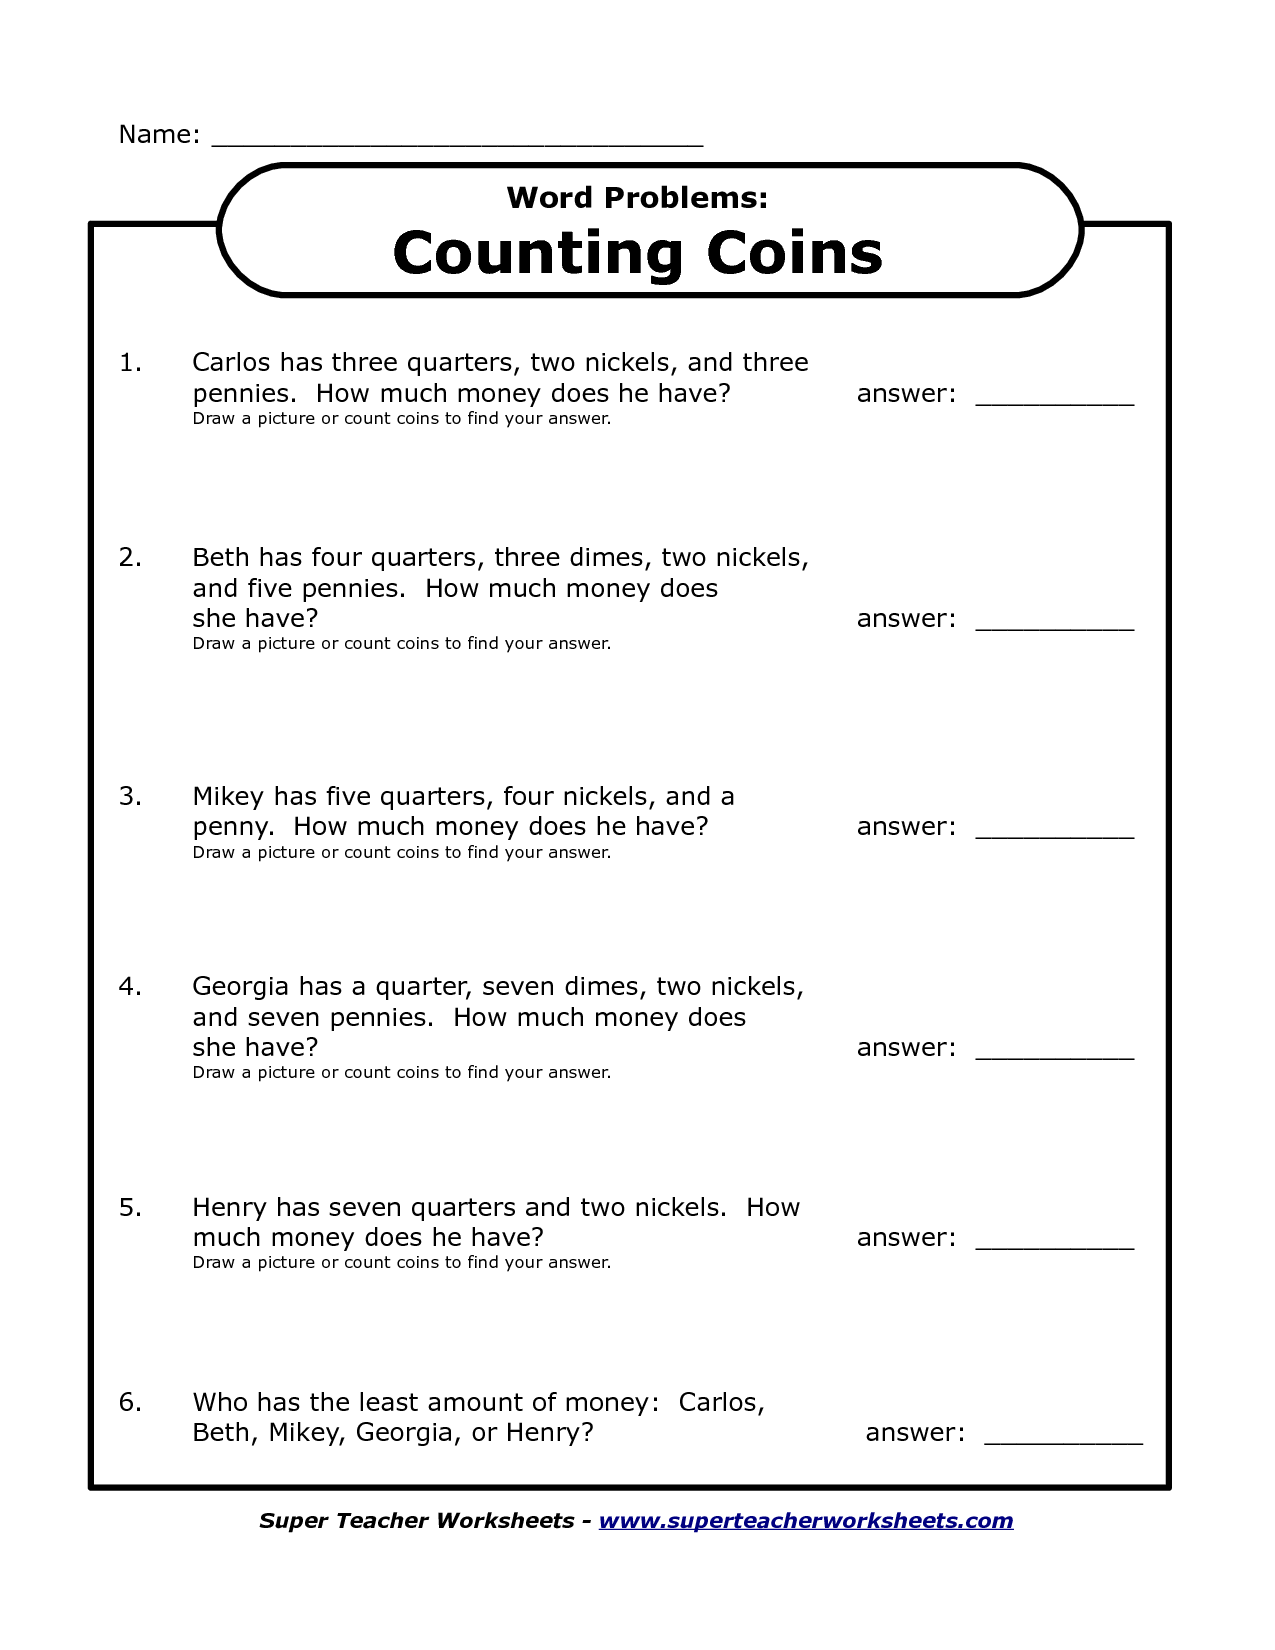 12 Best Images Of Learning To Count Money Worksheets